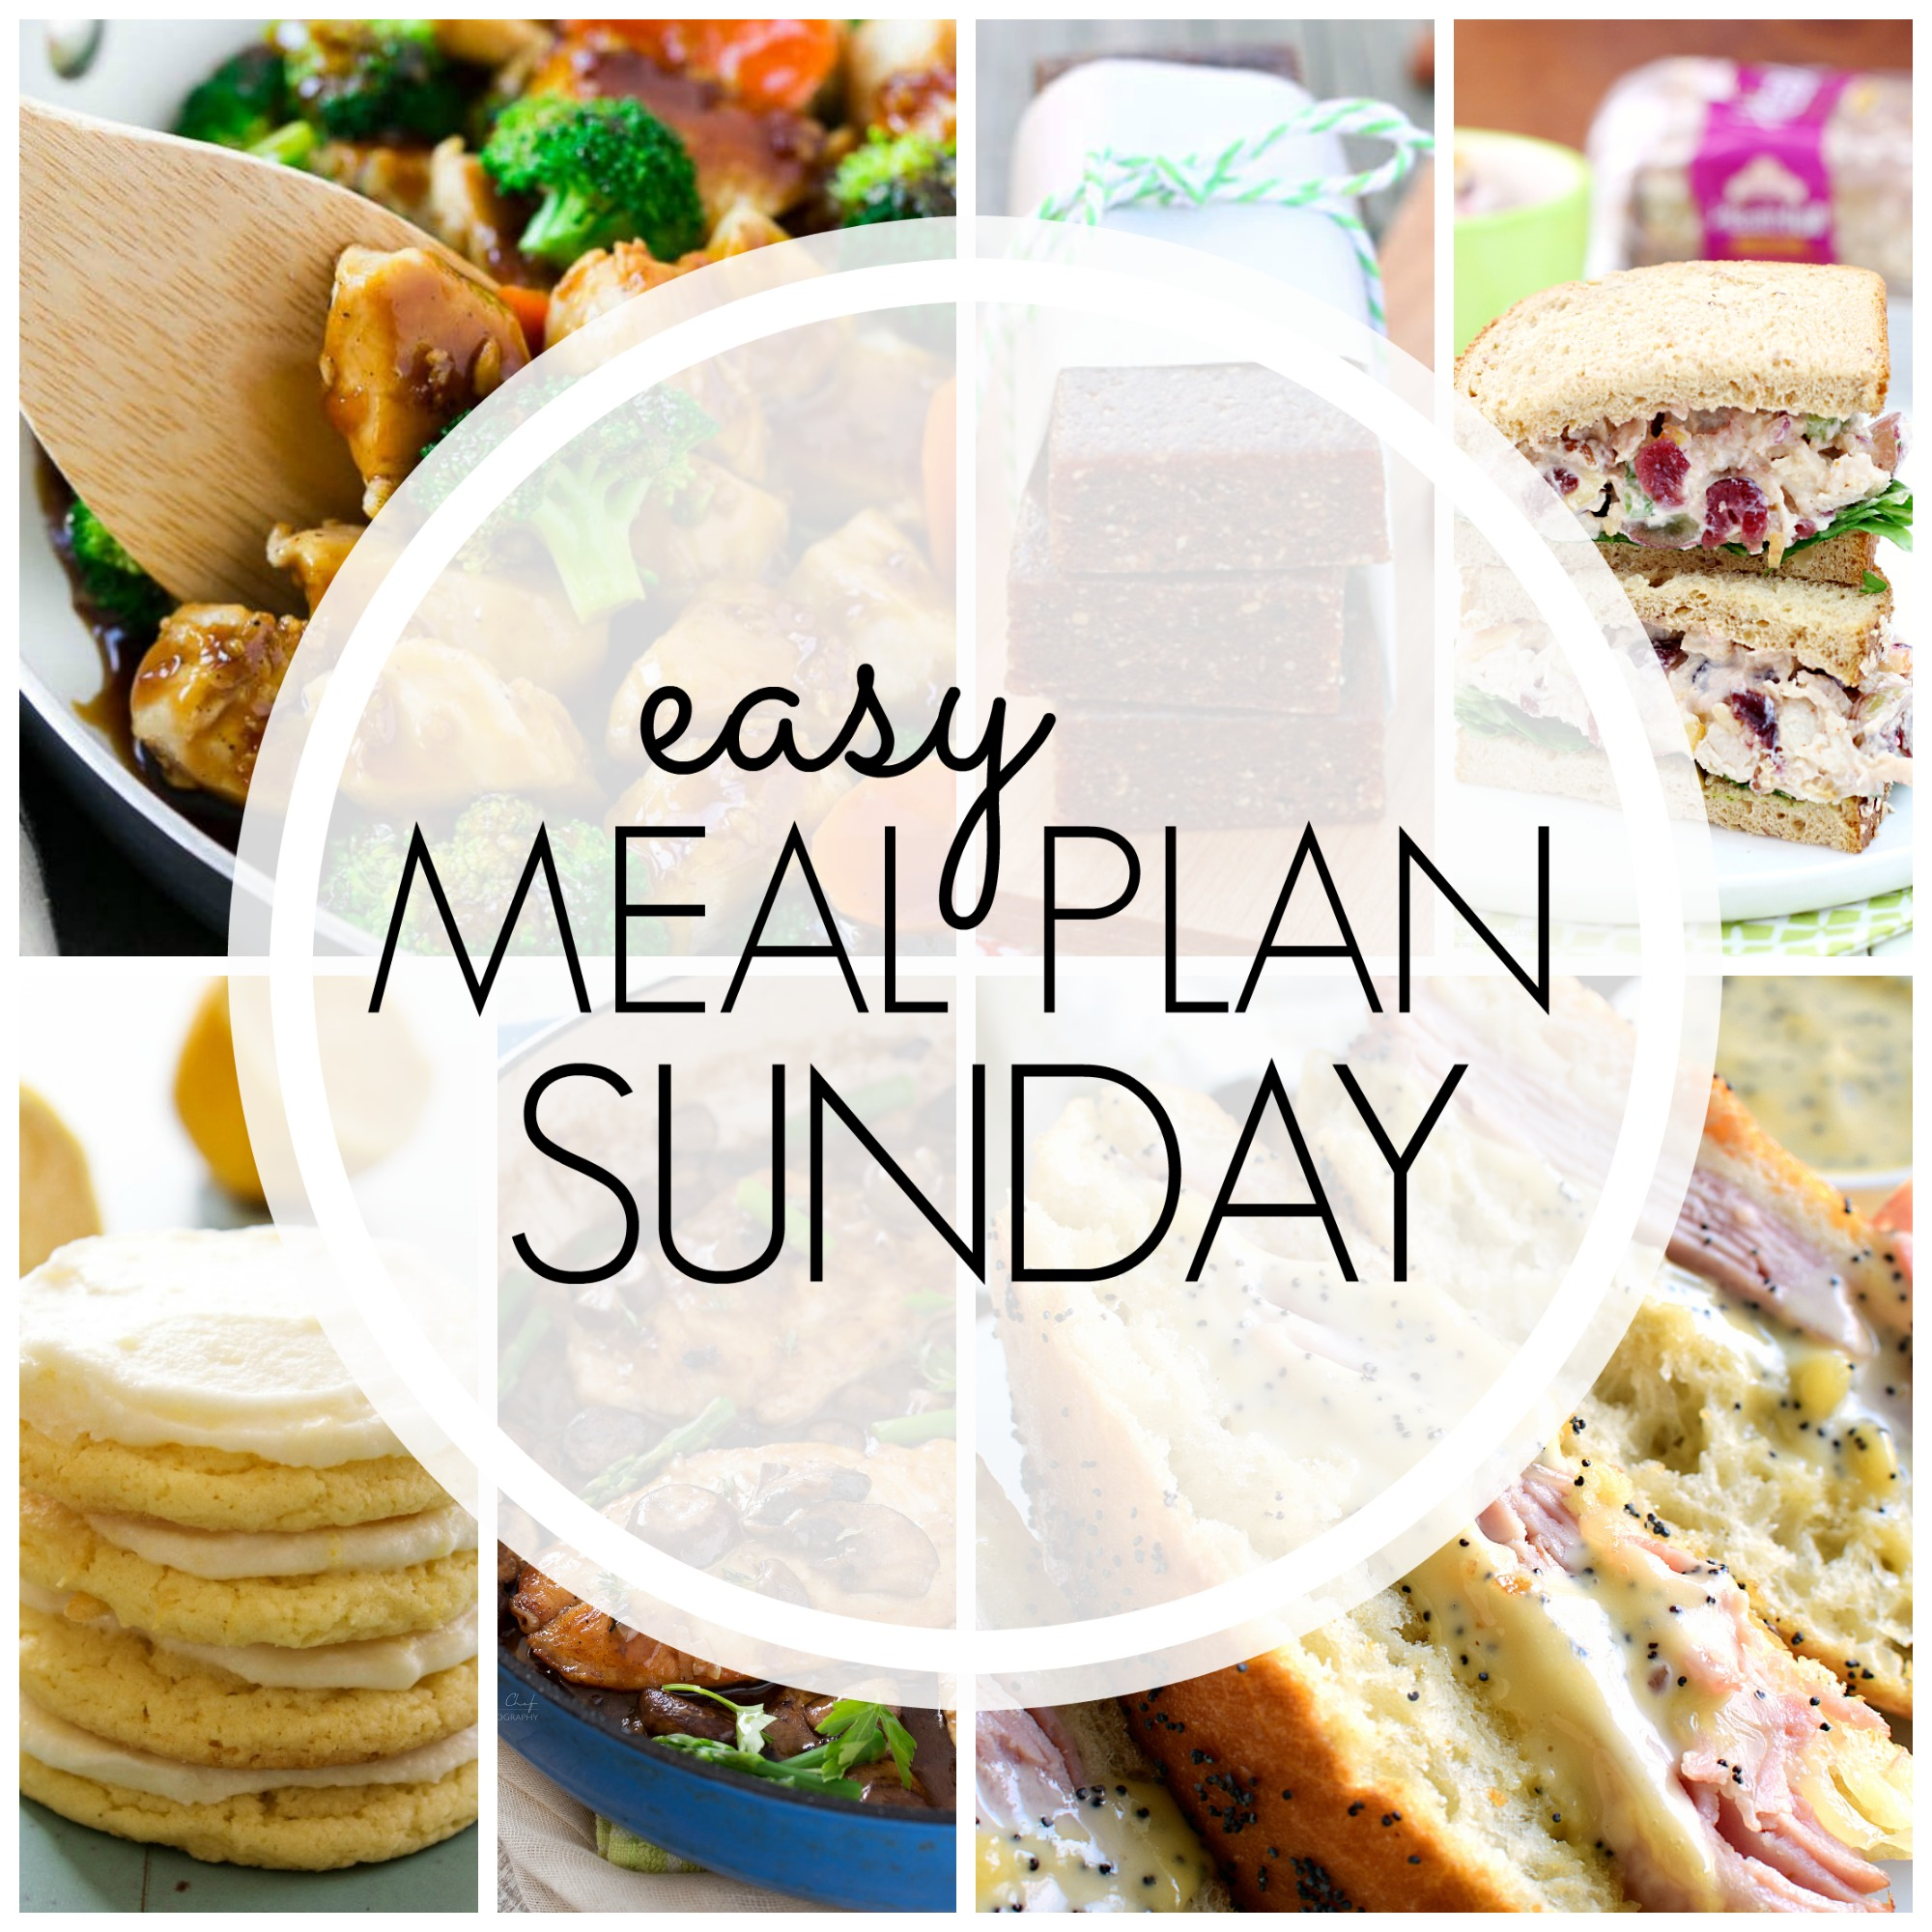 Easy Meal Plan Sunday #91